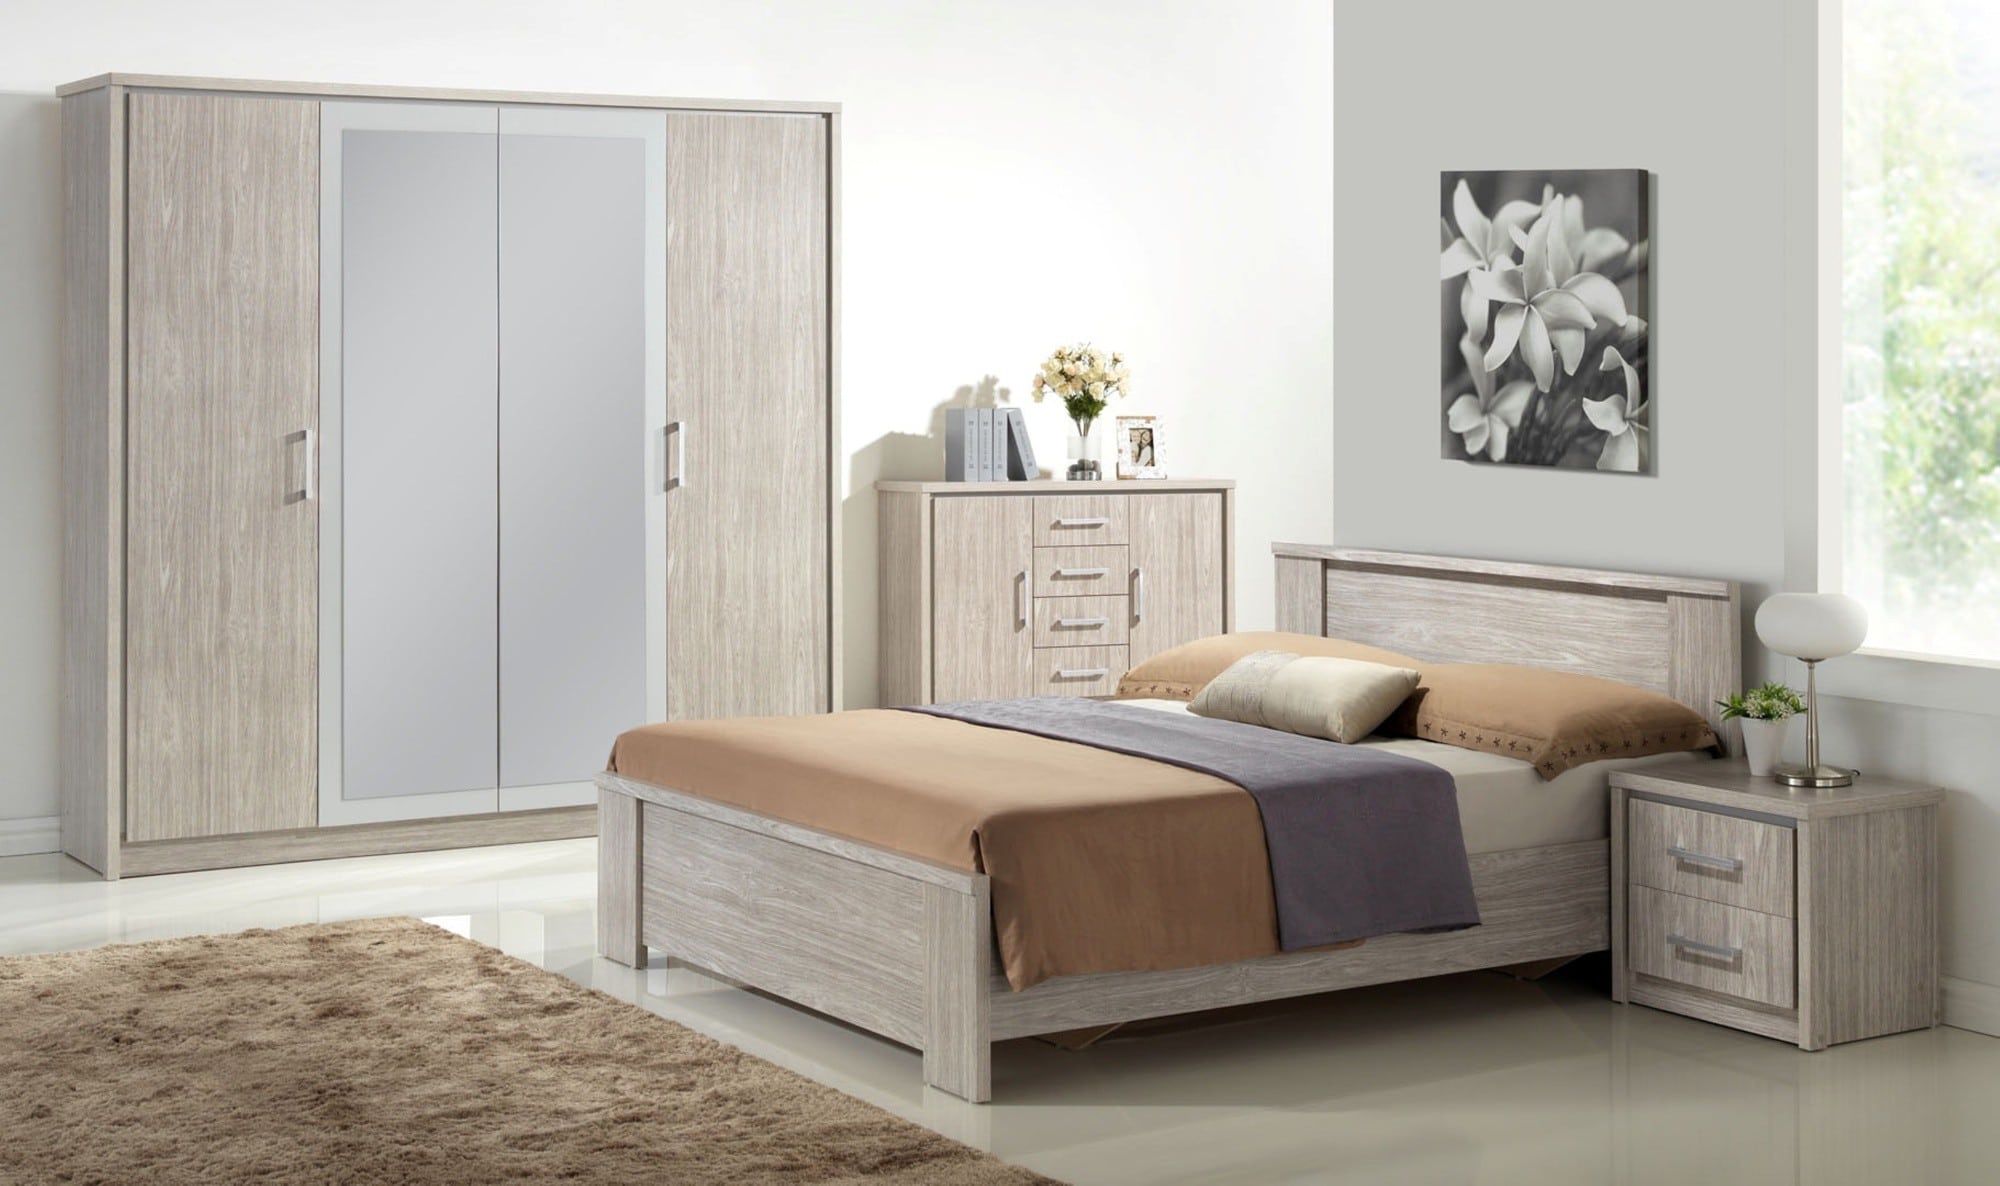 comment d corer sa chambre la contemporaine blog. Black Bedroom Furniture Sets. Home Design Ideas